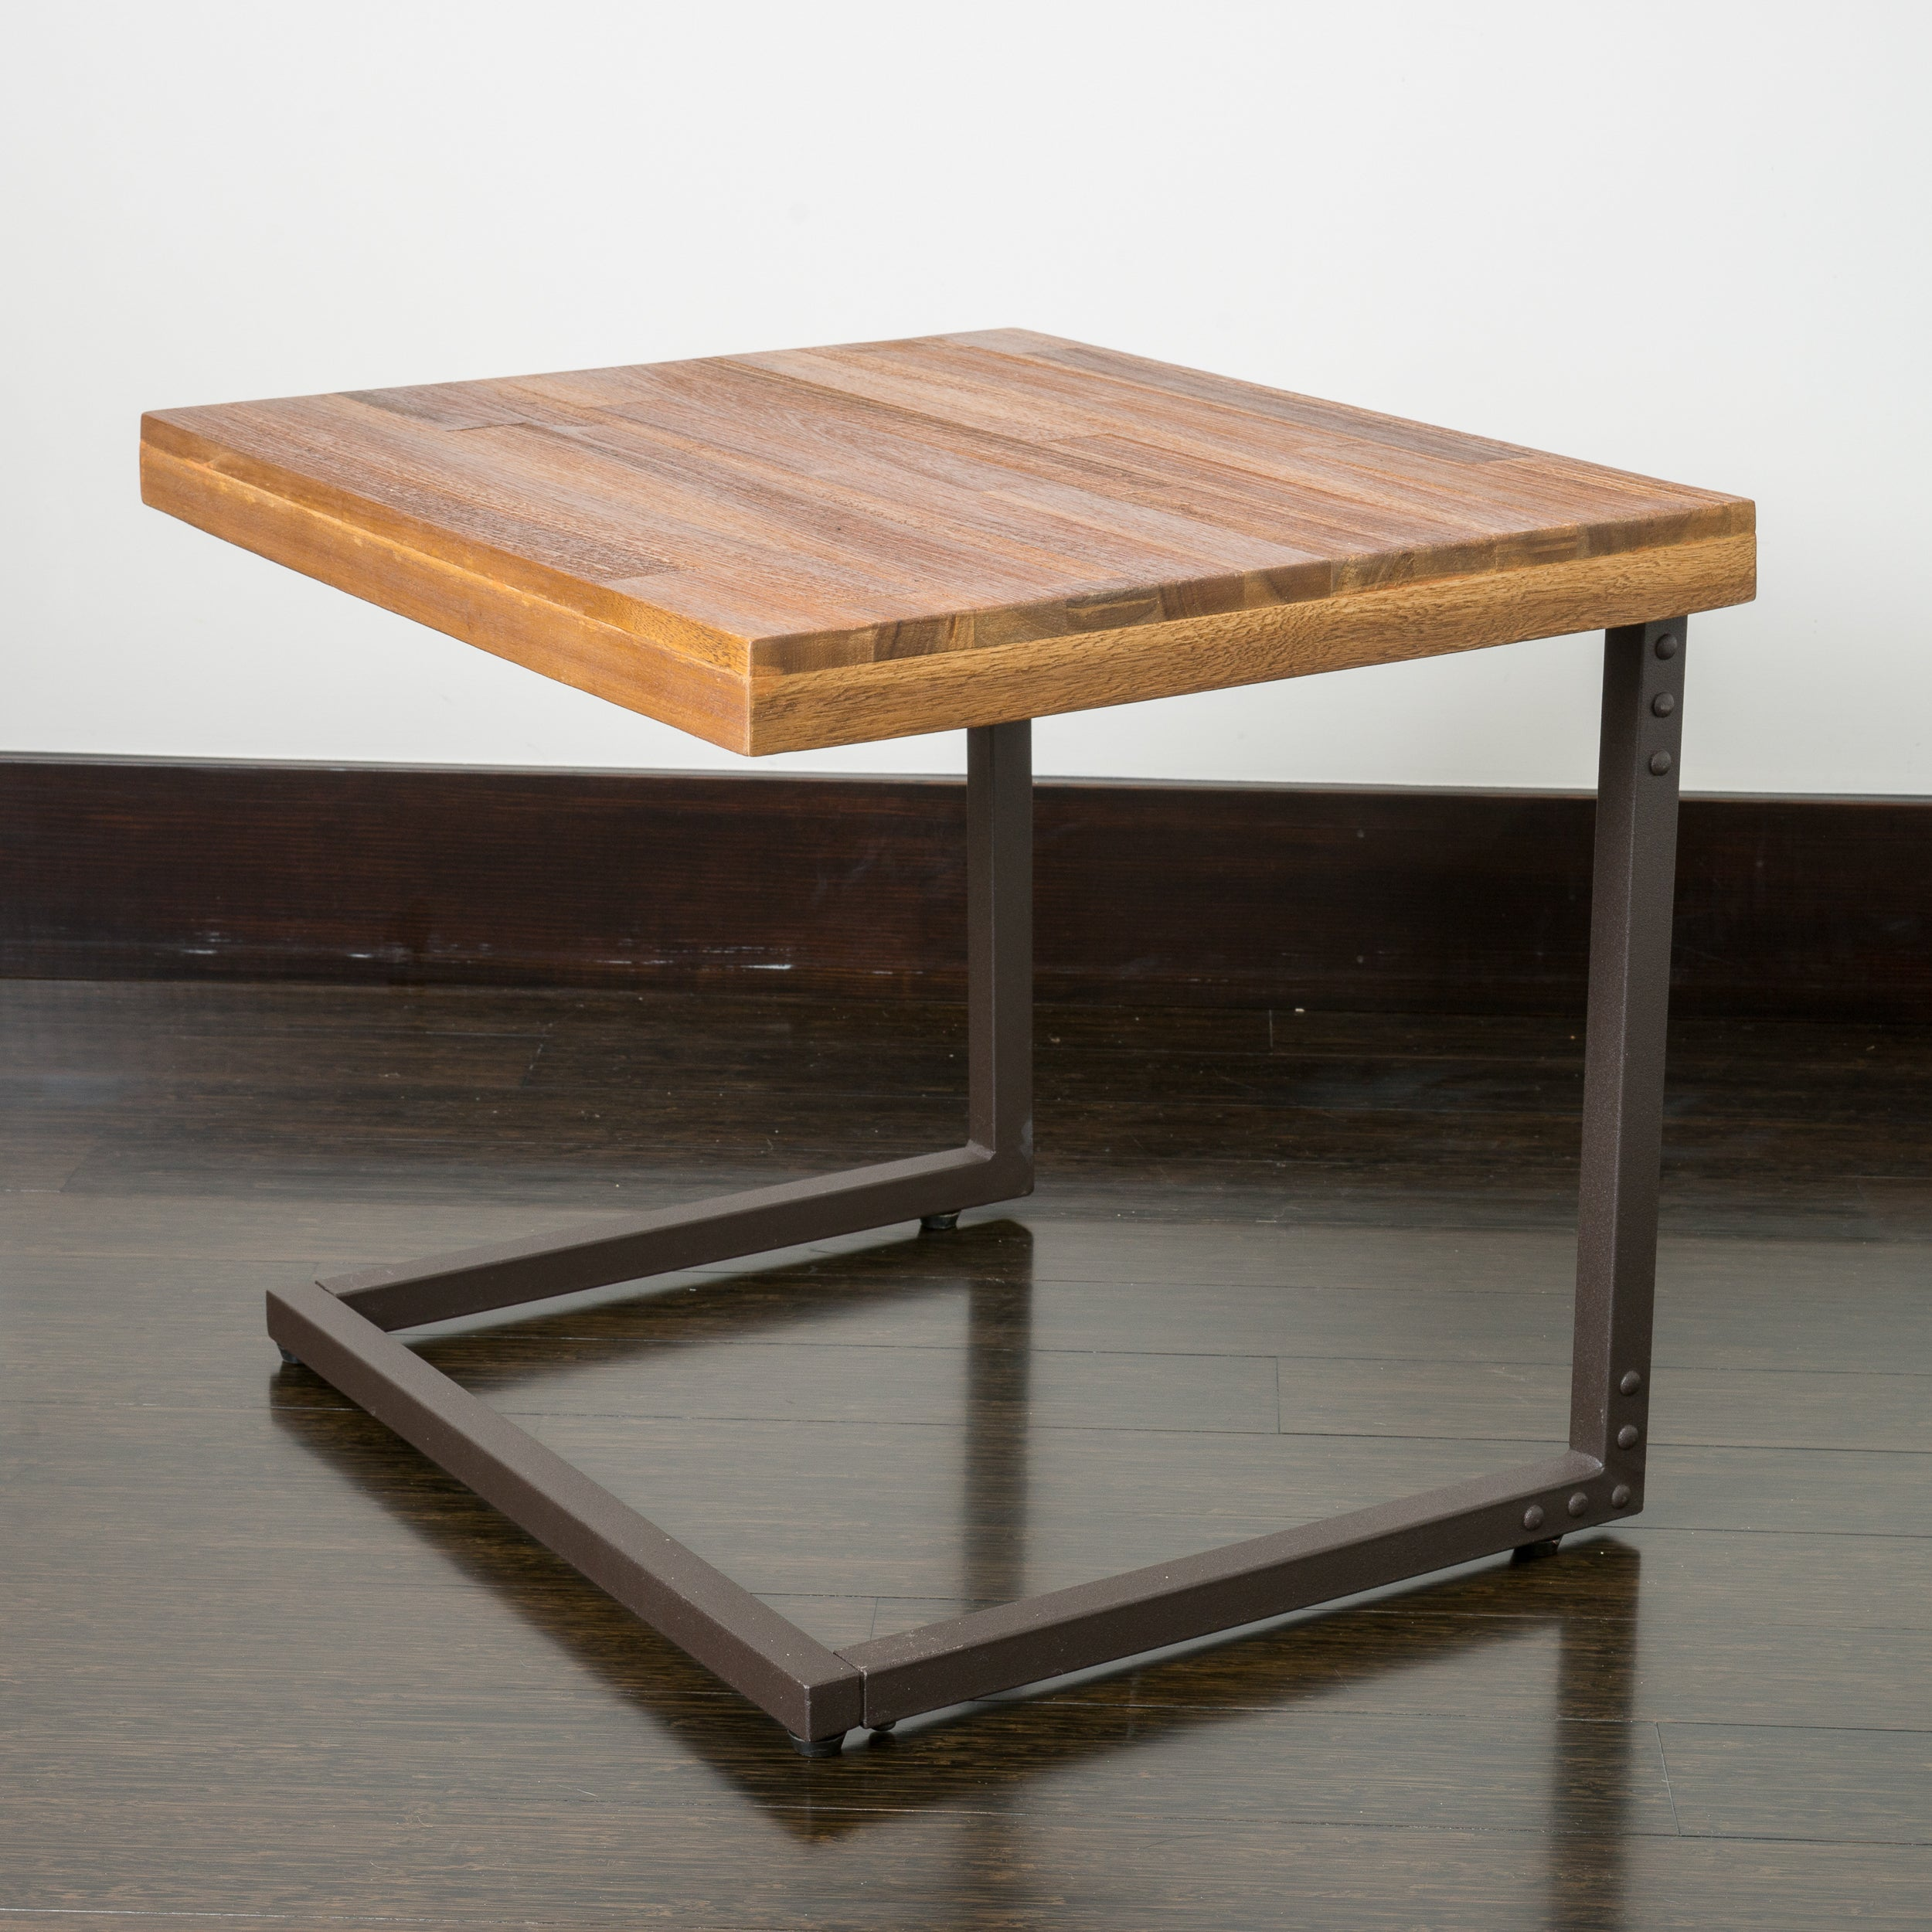 Braeden Sandblast Rustic Wood Iron Nested Tables (Set Of 2)   Free Shipping  Today   Overstock.com   16045026